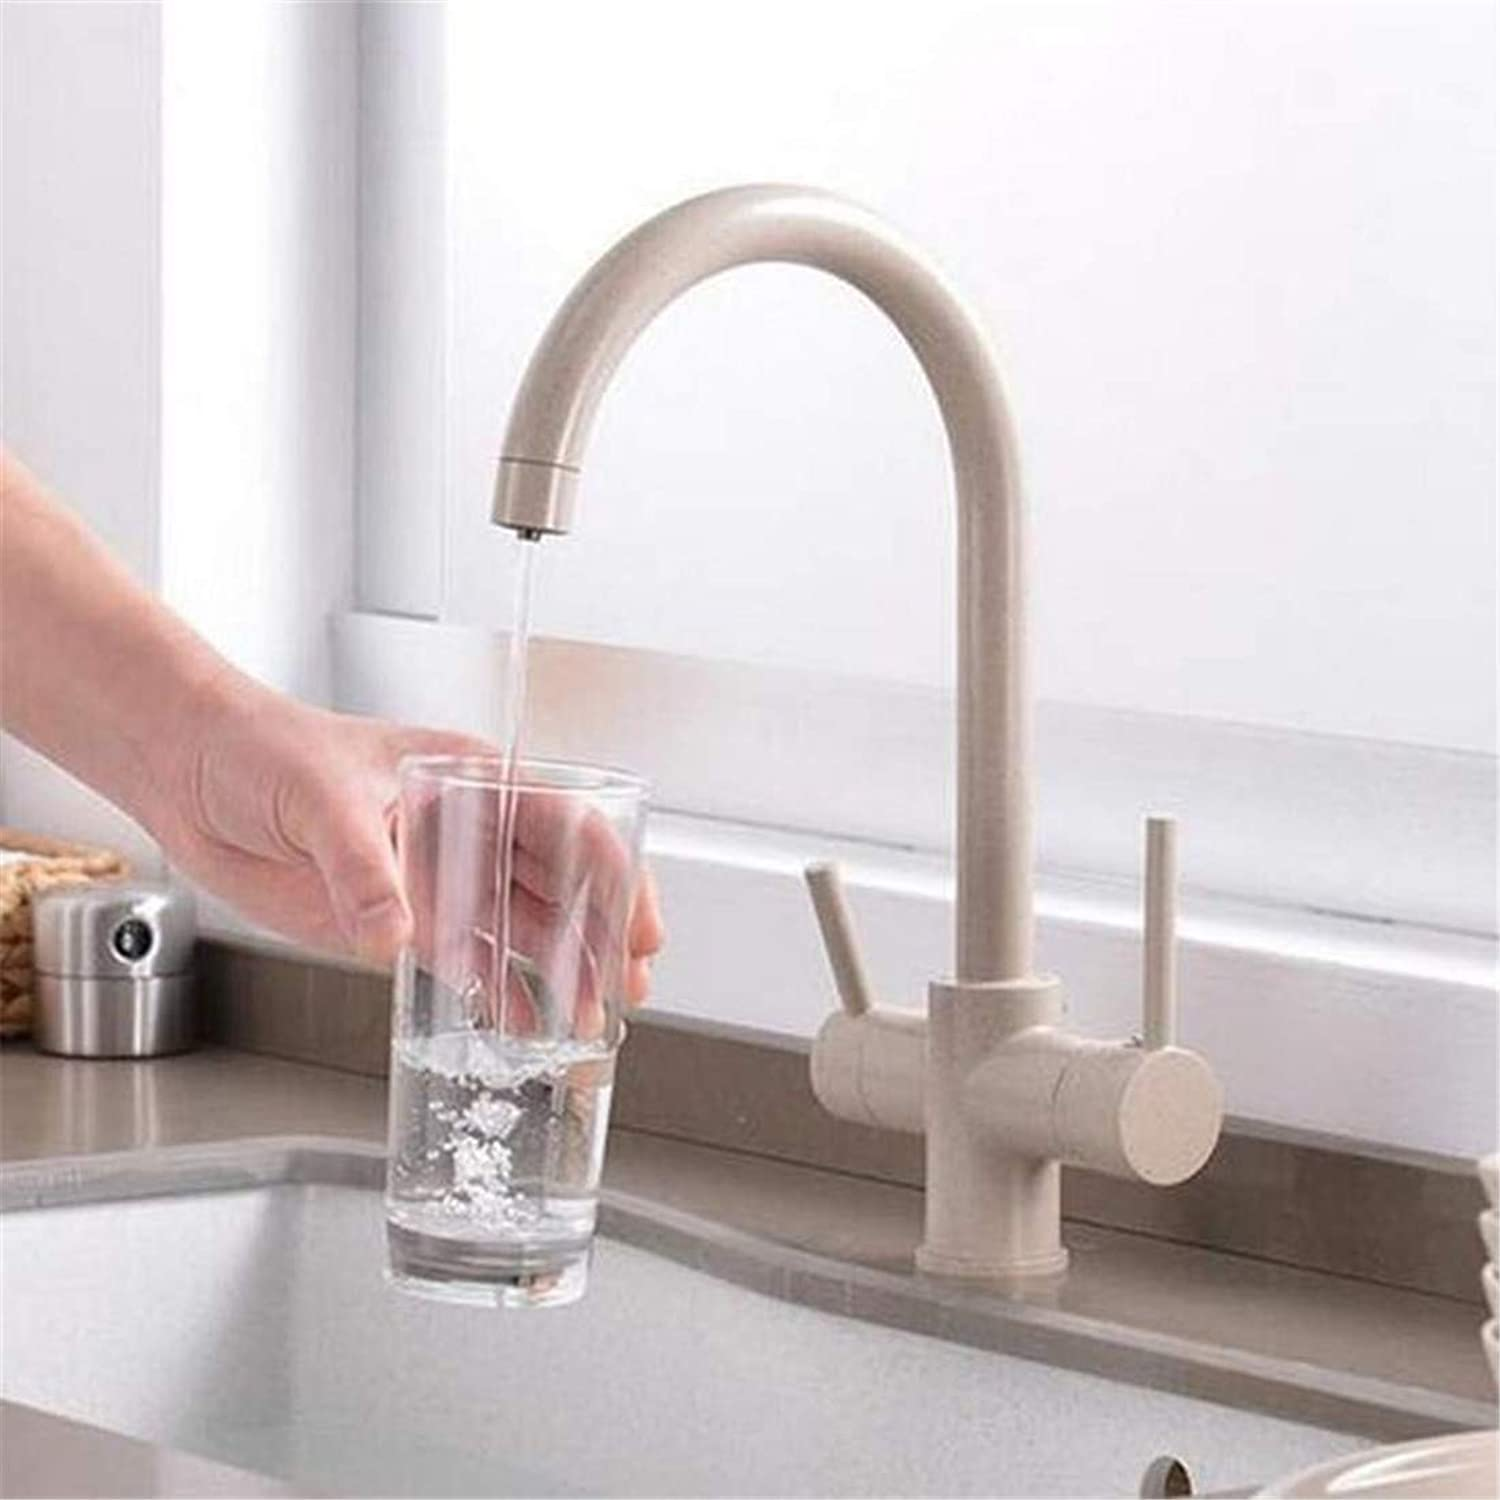 Faucet Vintage Brass Chrome Kitchen Sink Faucet Mixer Design 360 Degree redation Kitchen Faucet